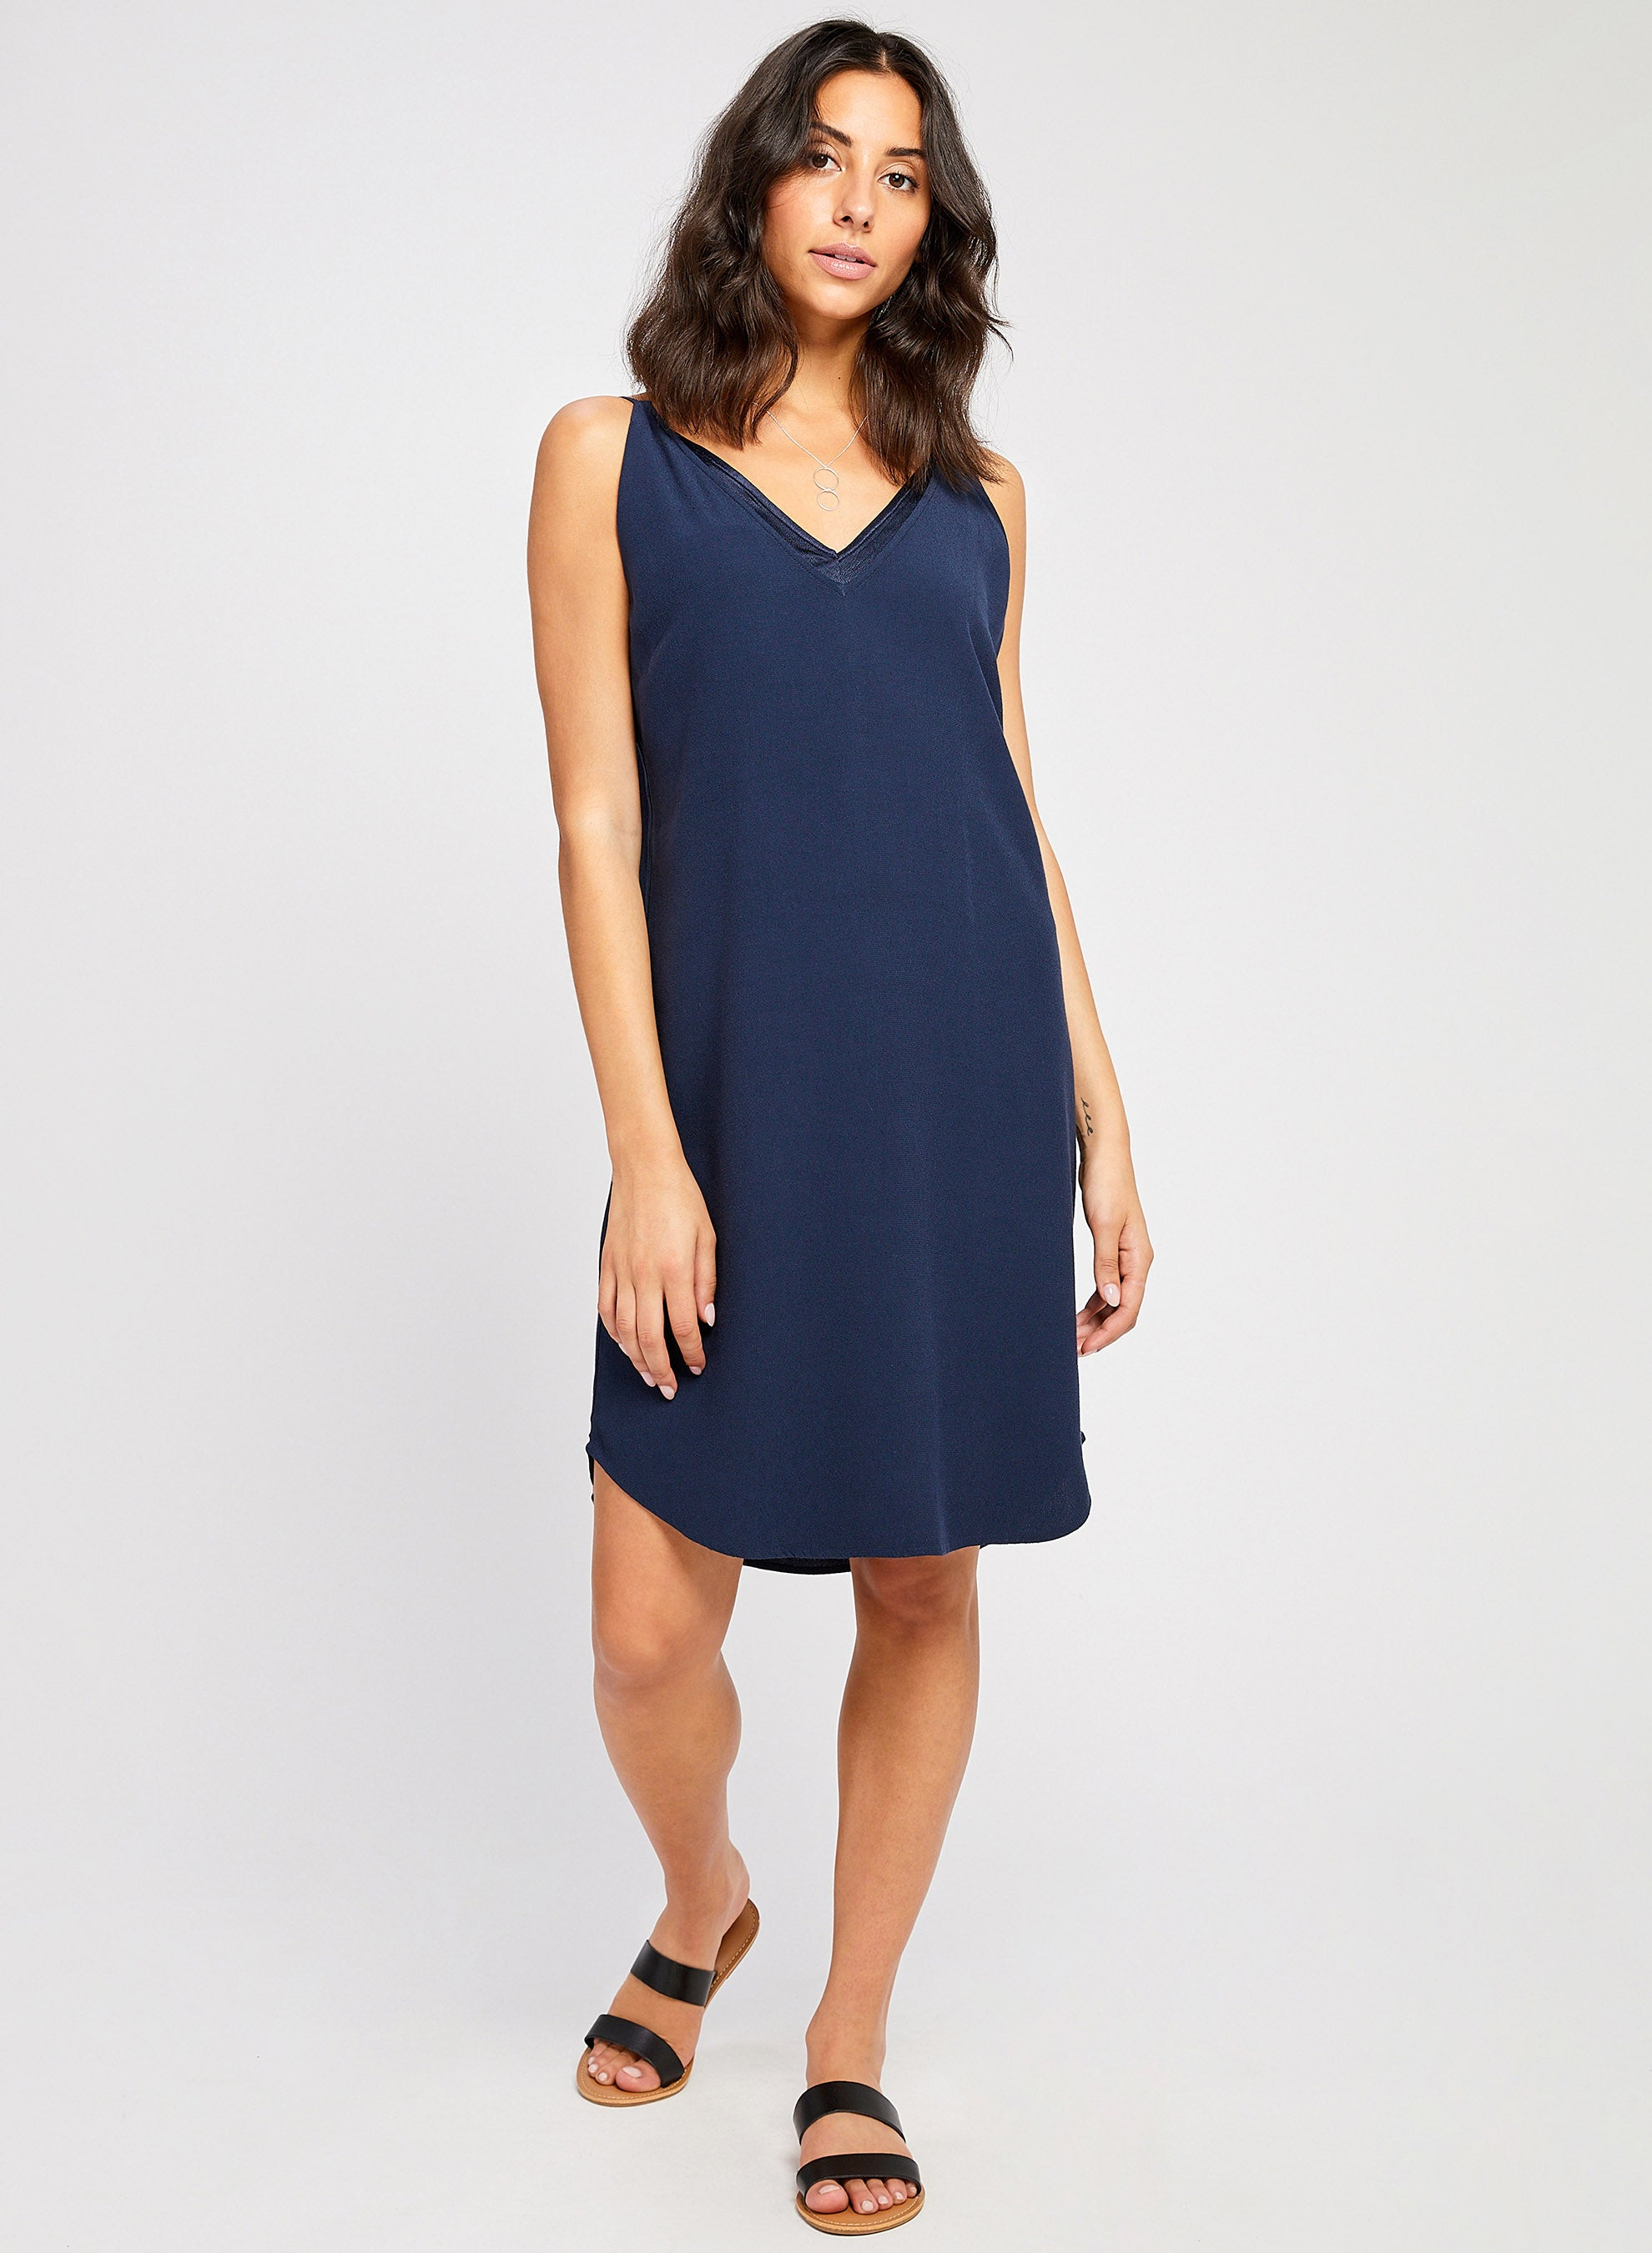 Aubrey Dress- Dark Navy